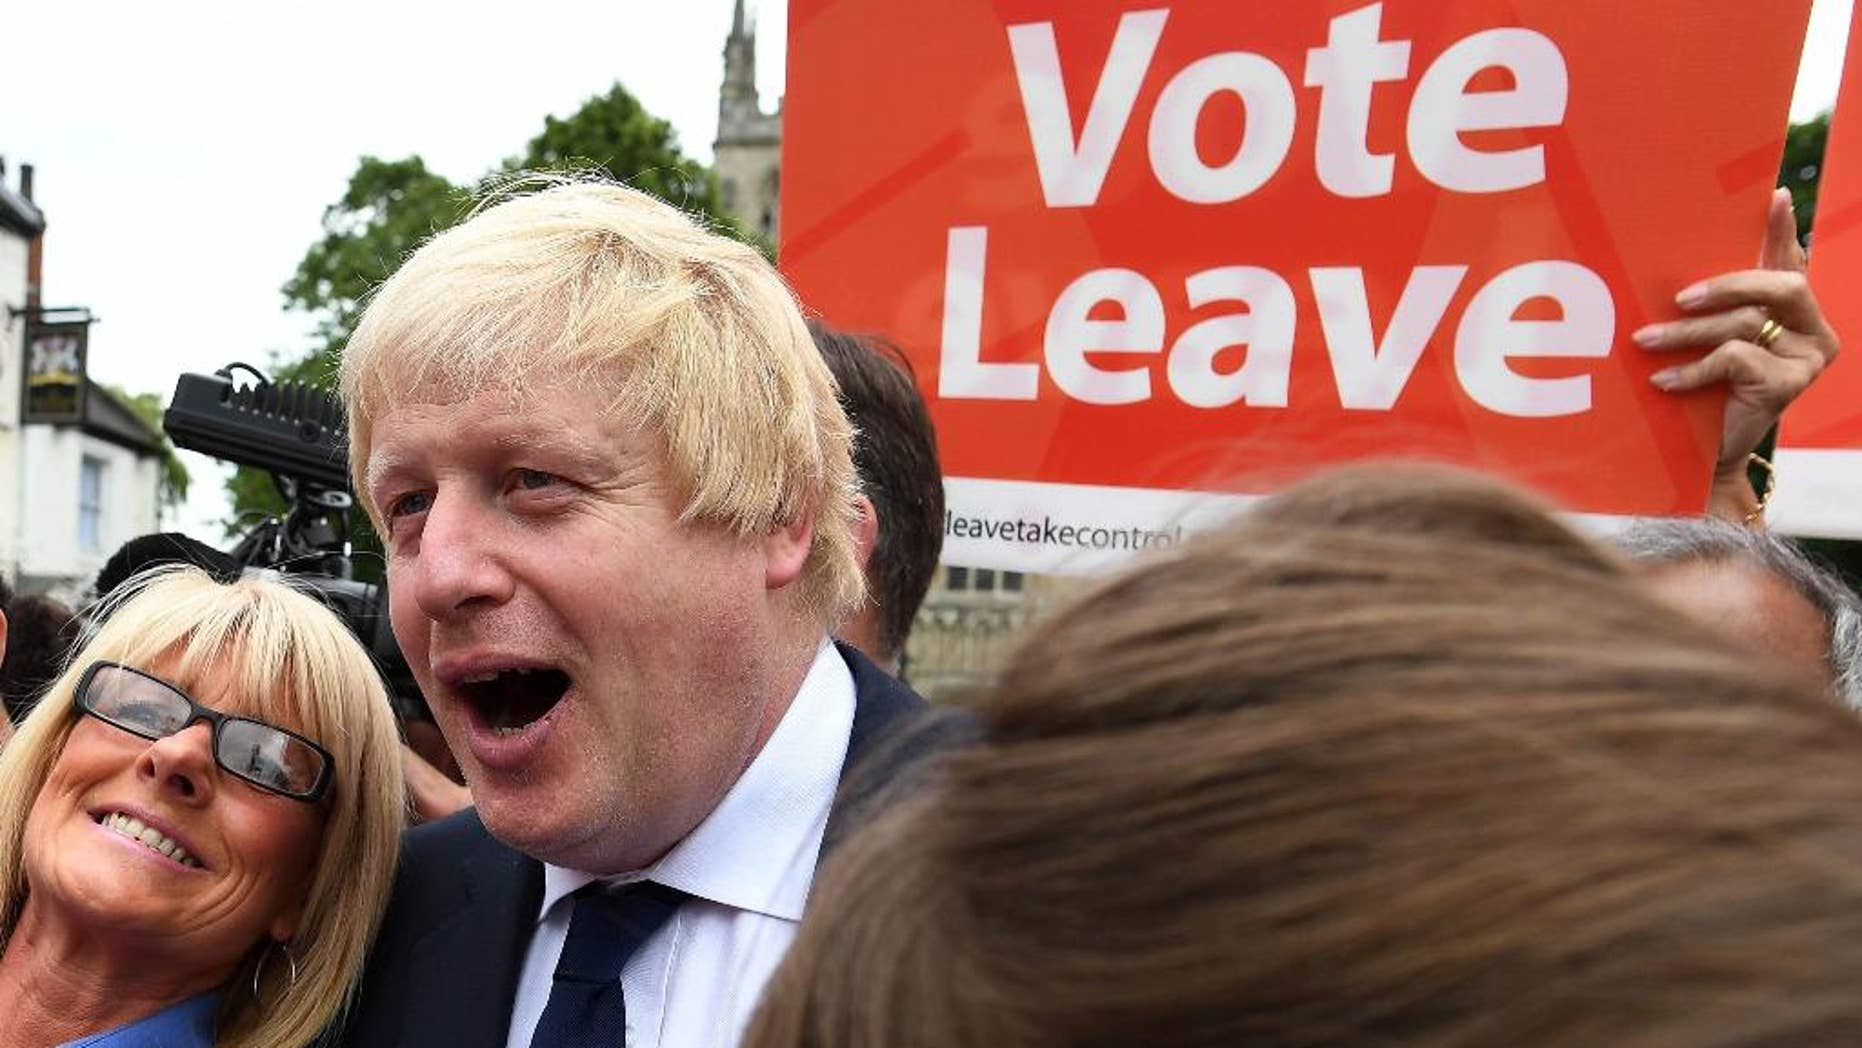 FILE In this Wednesday, June 22, 2016 file photo, advocate to exit Europe Boris Johnson poses for a selfie photo with voters during a whistle stop tour of the country on the final day of campaigning before Thursday's EU referendum vote, in Selby, north England. (Andrew Parsons / PA via AP, File) UNITED KINGDOM OUT - NO SALES - NO ARCHIVES